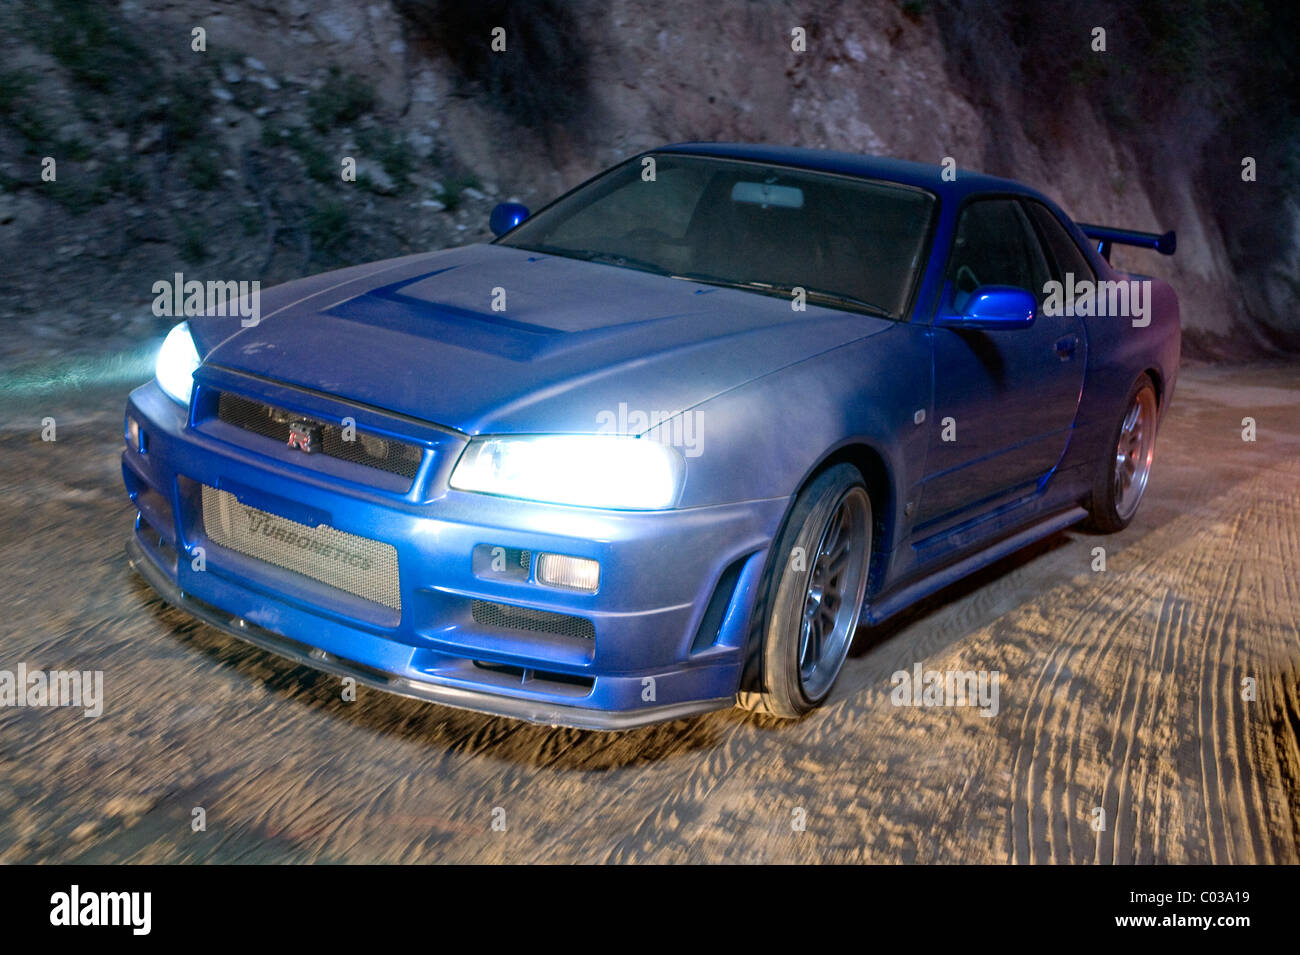 1998 Nissan Skyline Er34 Fast Furious The Fast And The Furious 4 Stock Photo Alamy